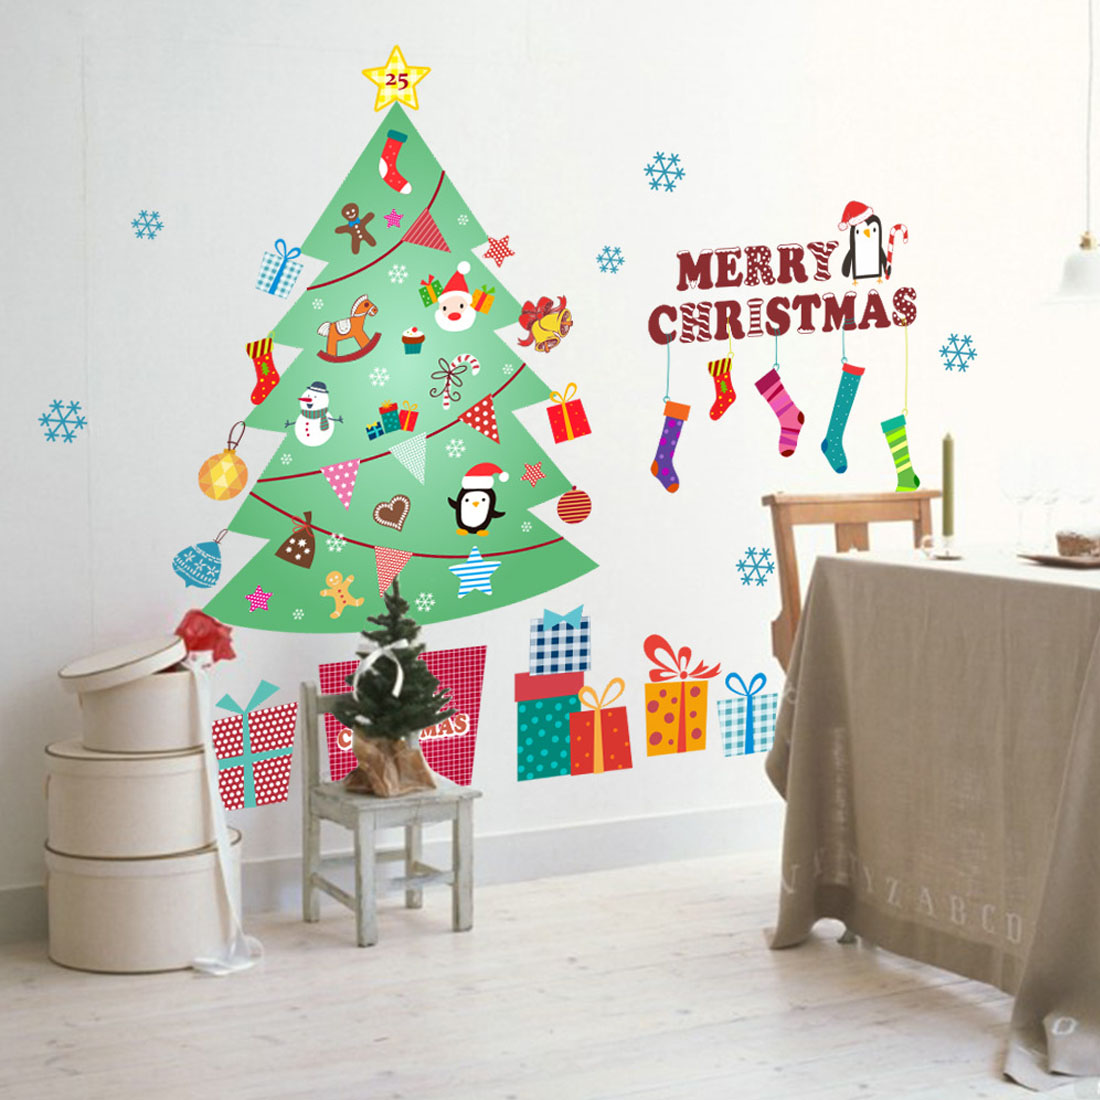 Xmas tree wall stickers 2018 happy new year merry christmas wall xmas tree wall stickers 2018 happy new year merry christmas wall sticker xmas home shop windows decals decor amipublicfo Gallery